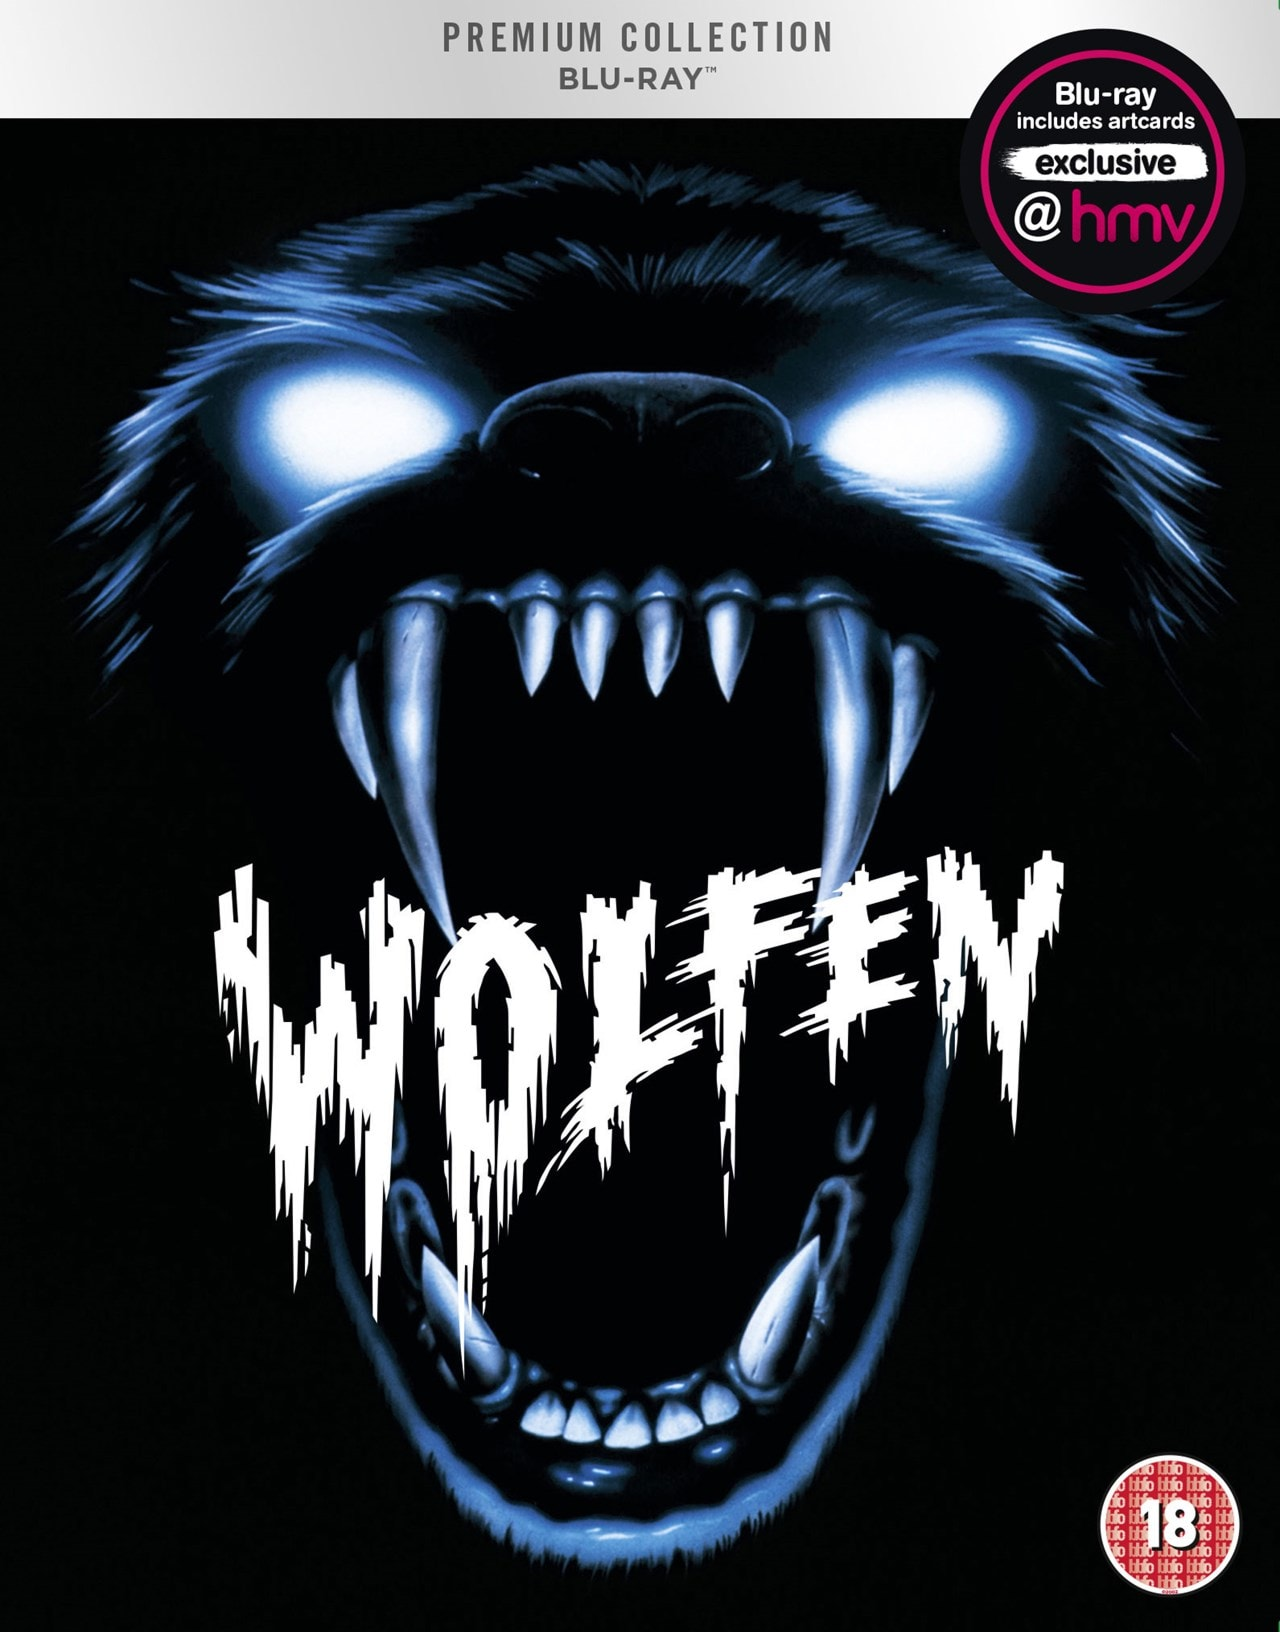 Wolfen (hmv Exclusive) - The Premium Collection - 1